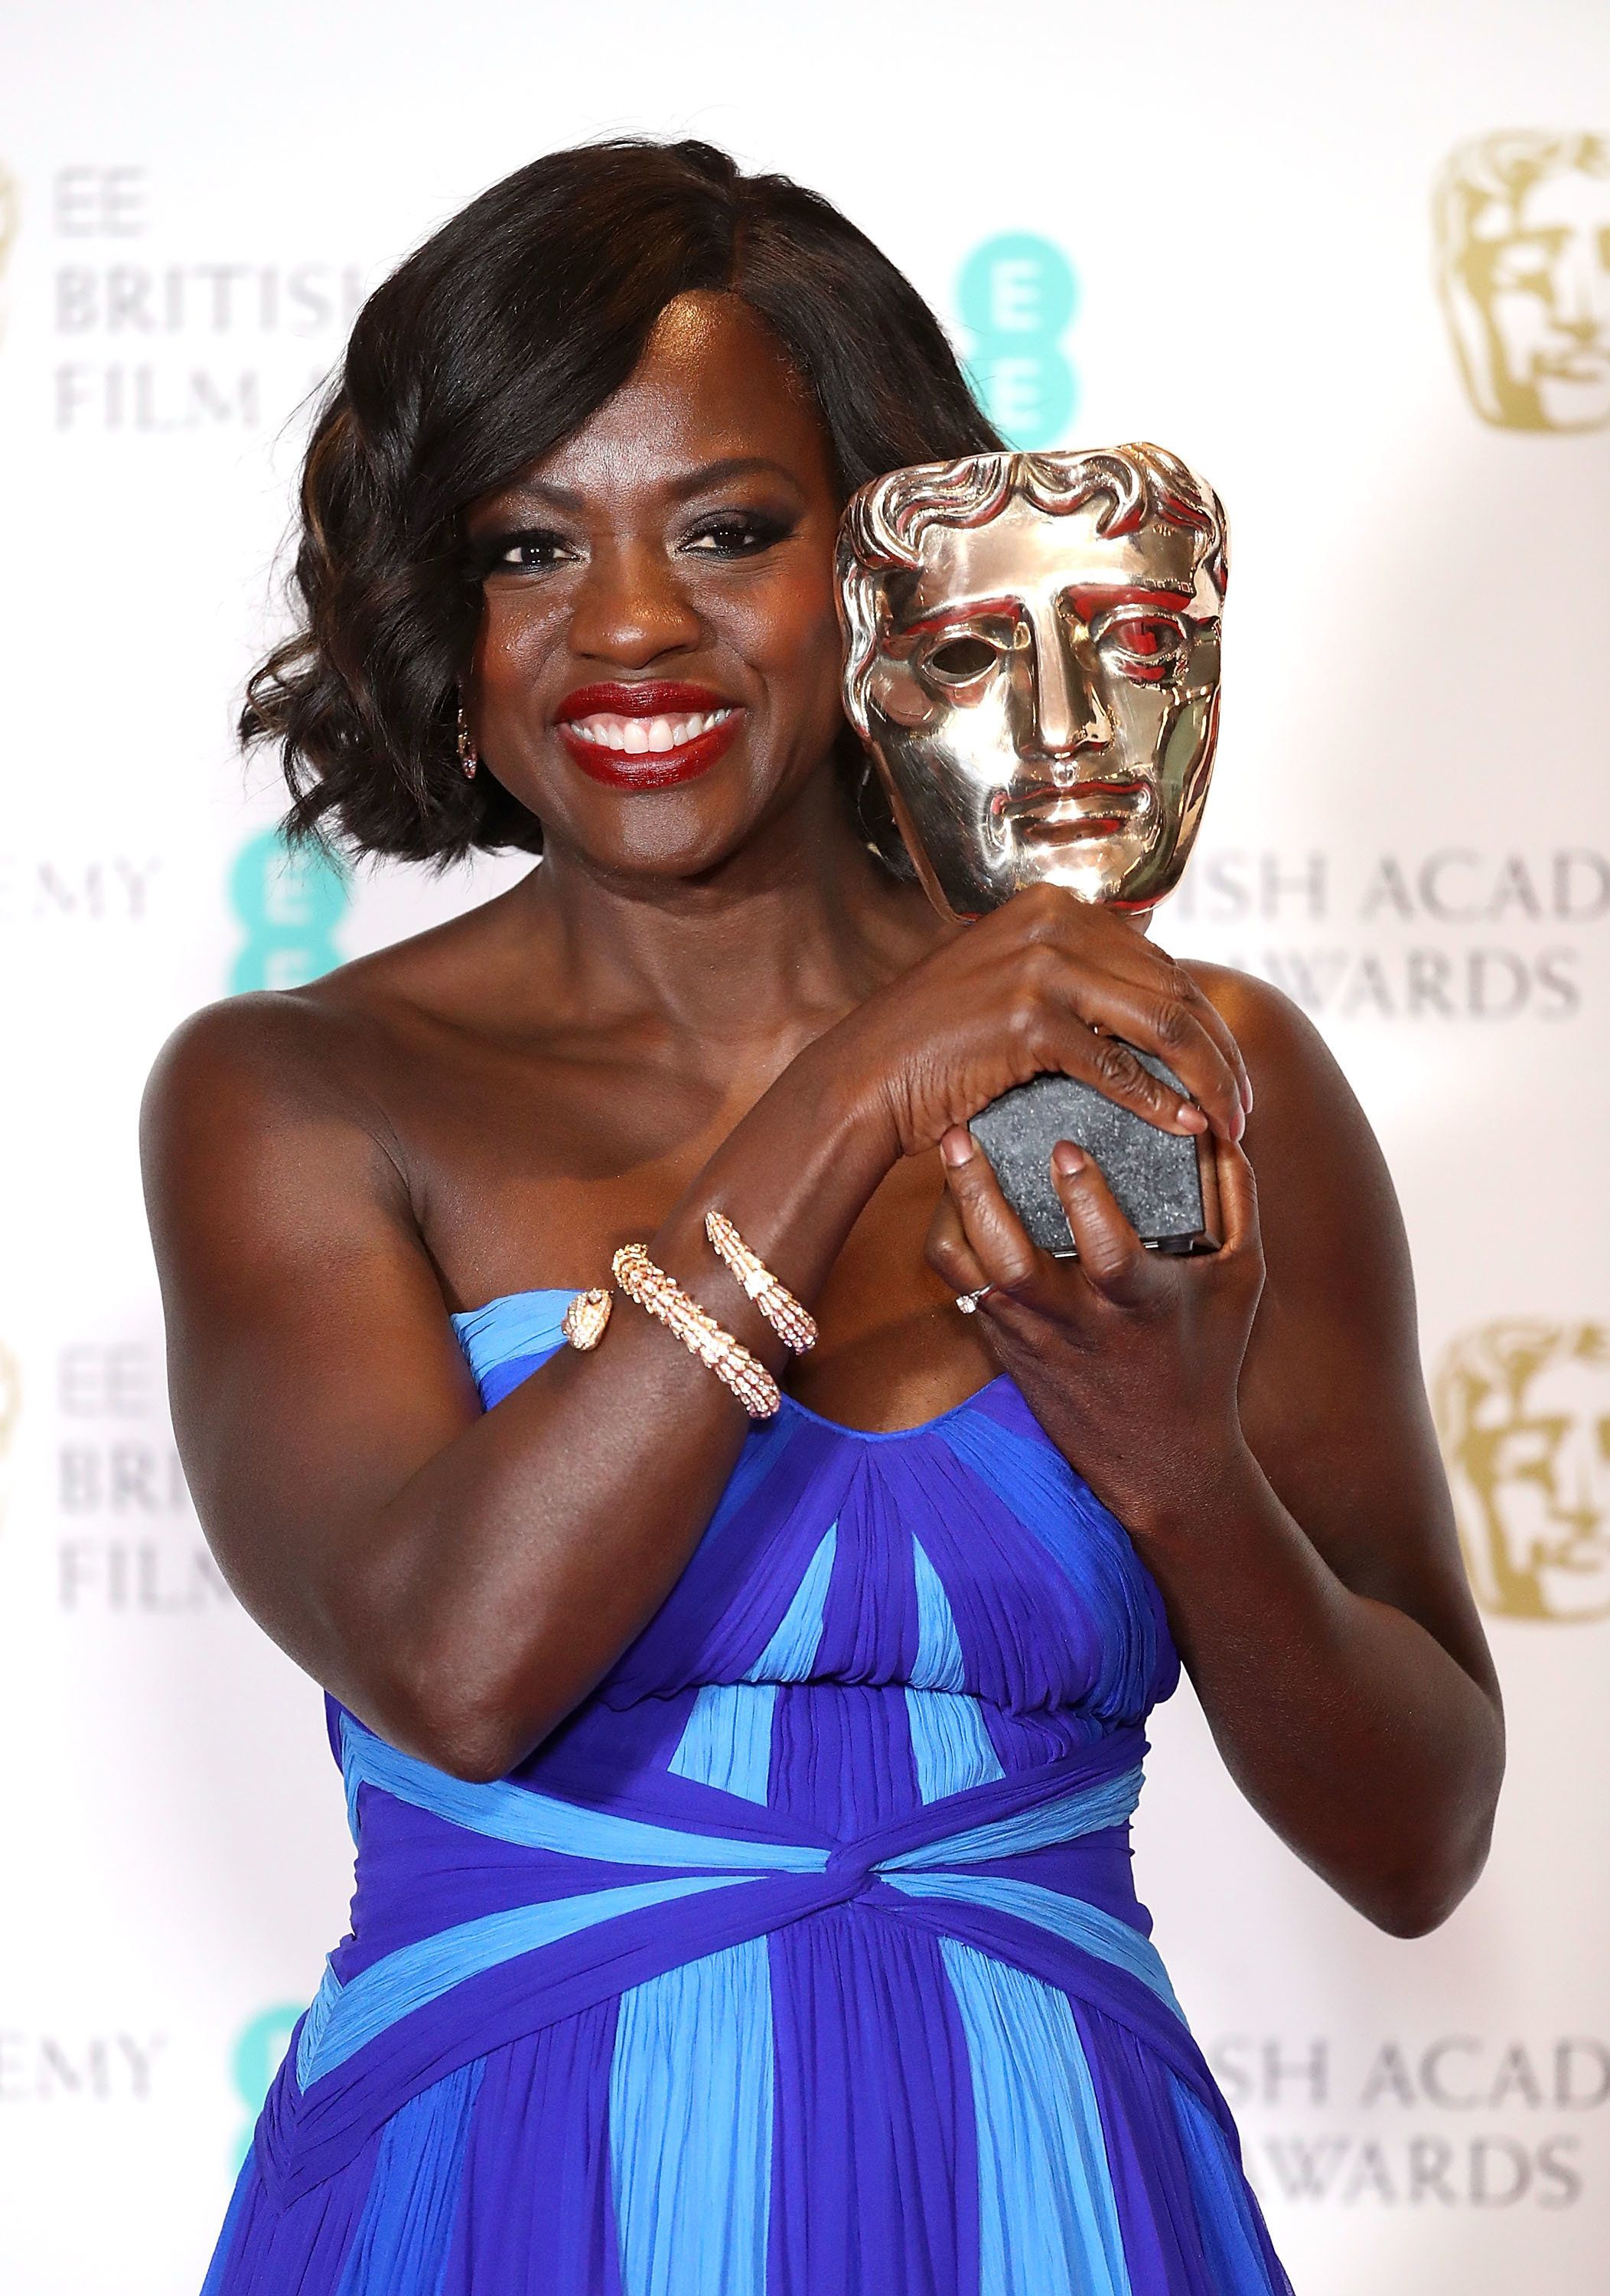 Viola Davis picked up the award for Best Supporting